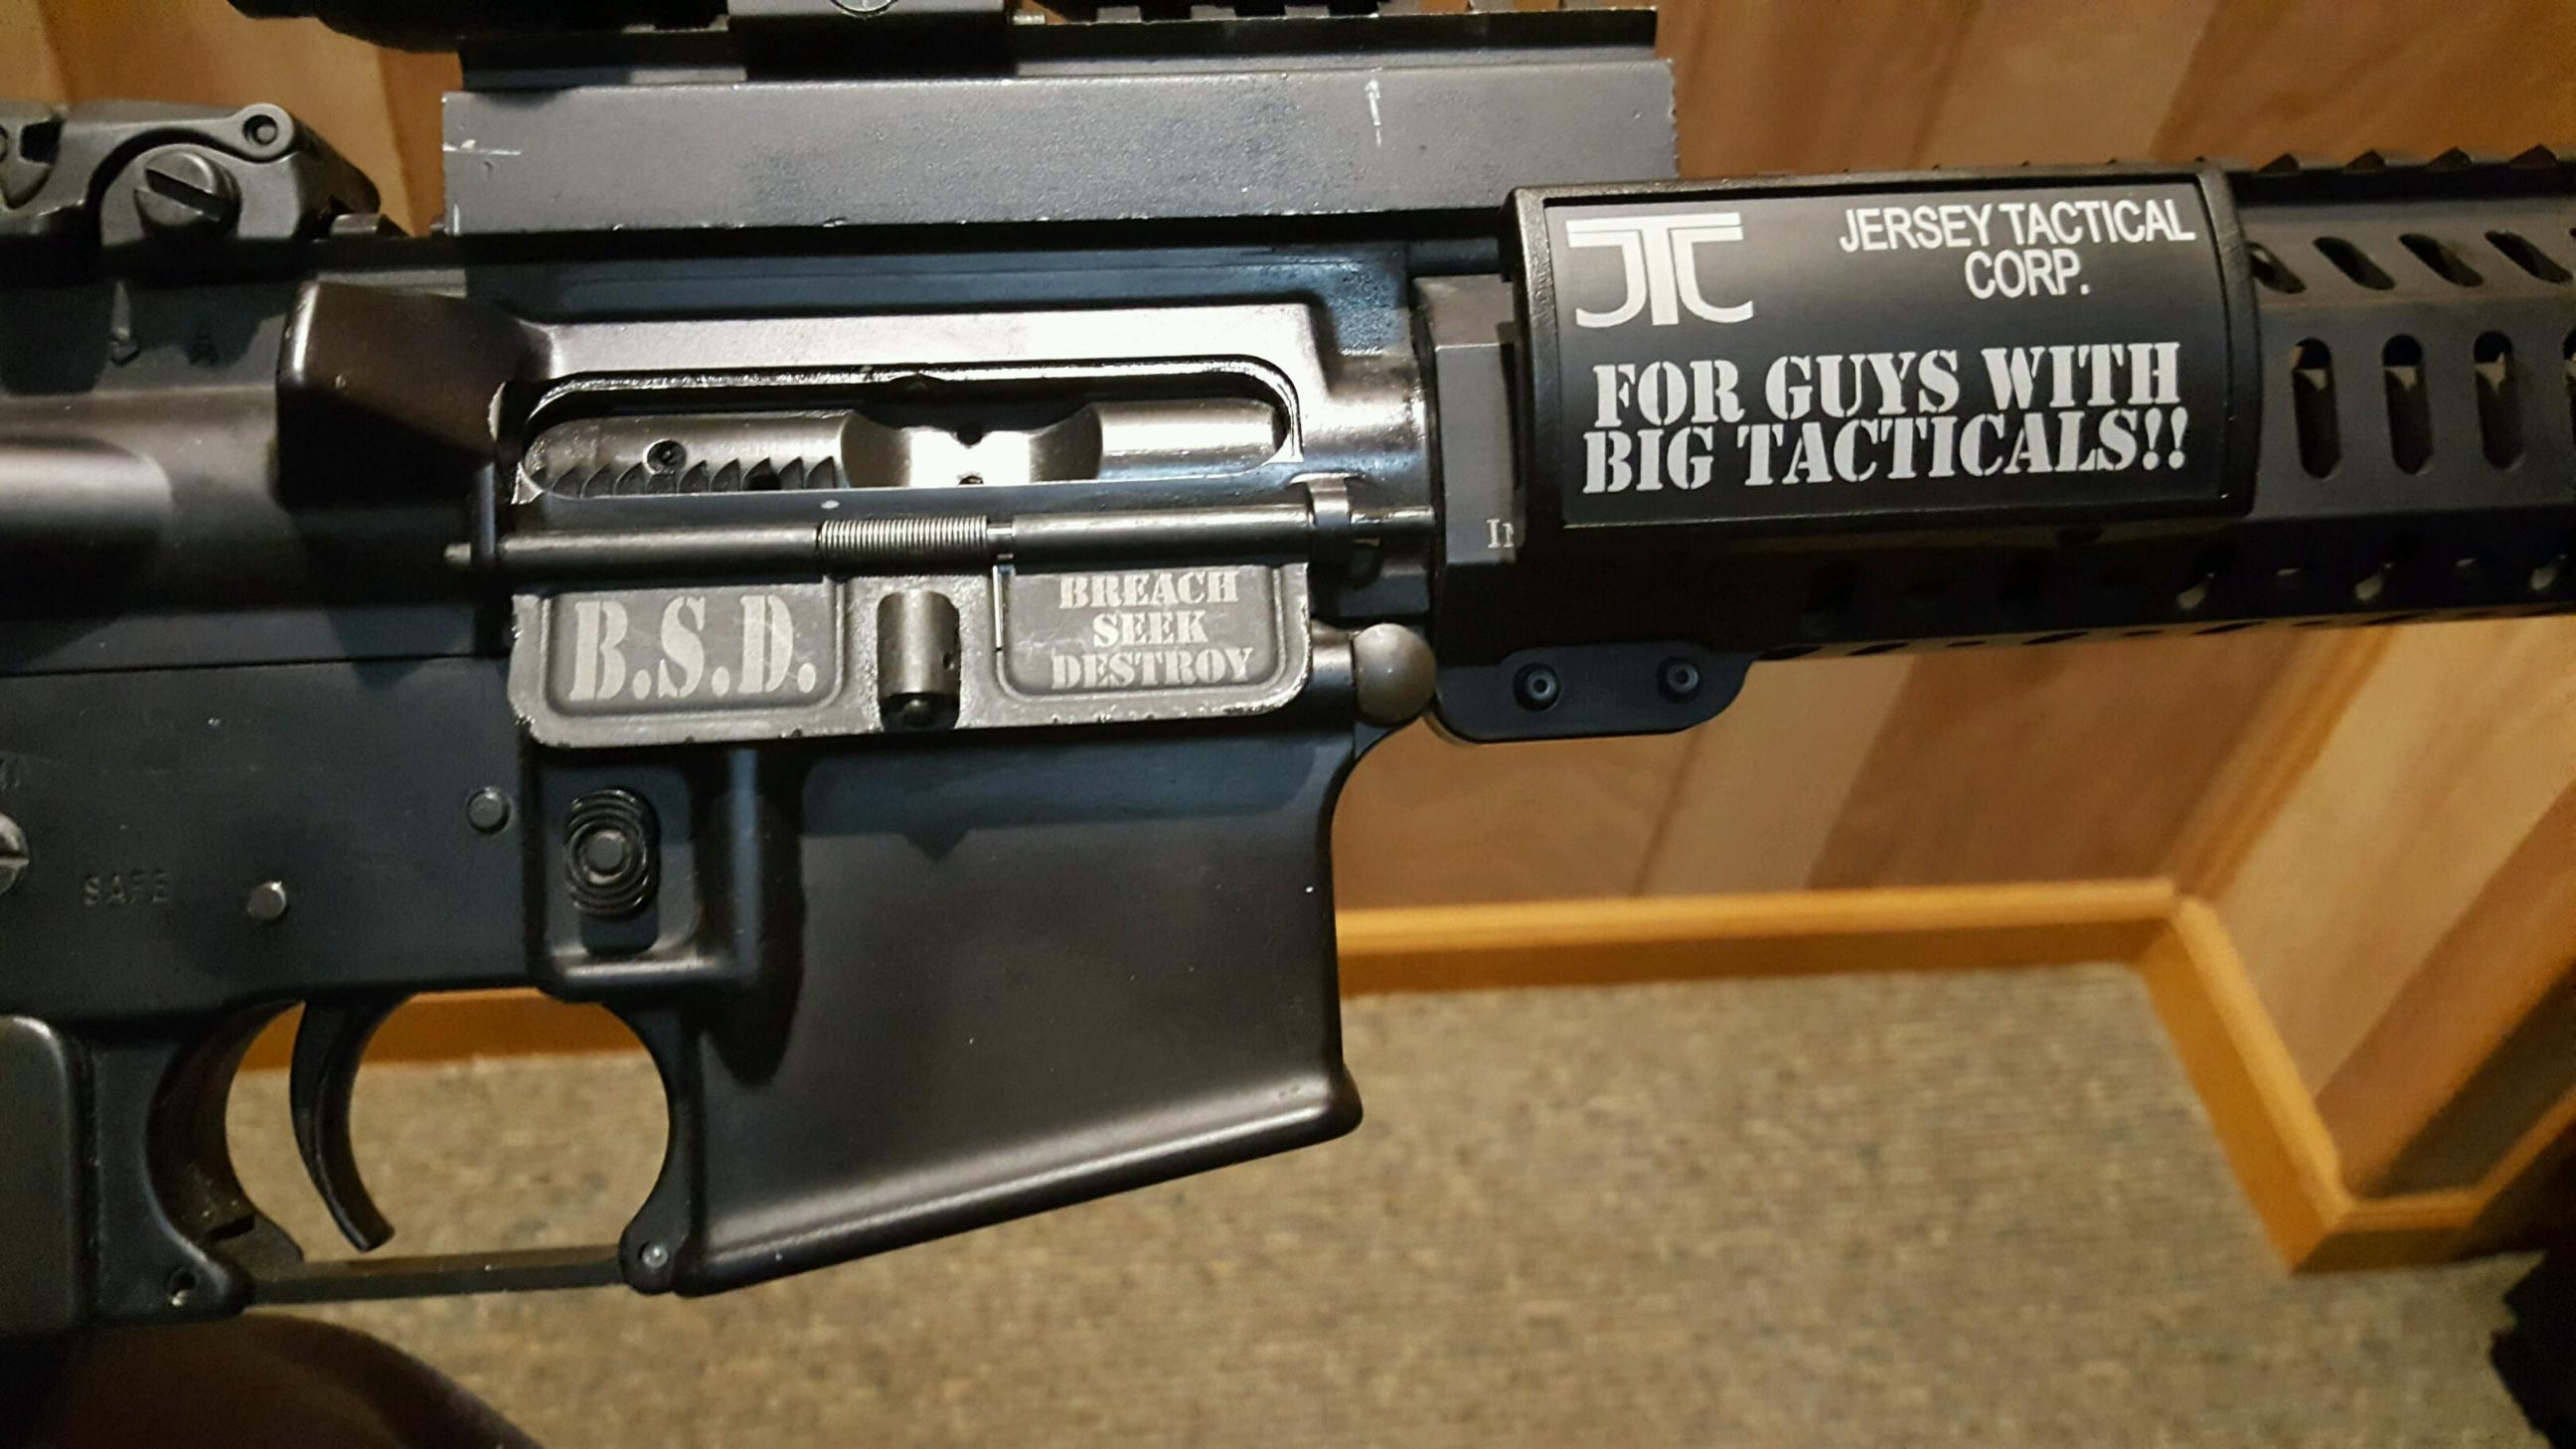 Jtc Ar 15 Dust Covers Jersey Tactical Corp